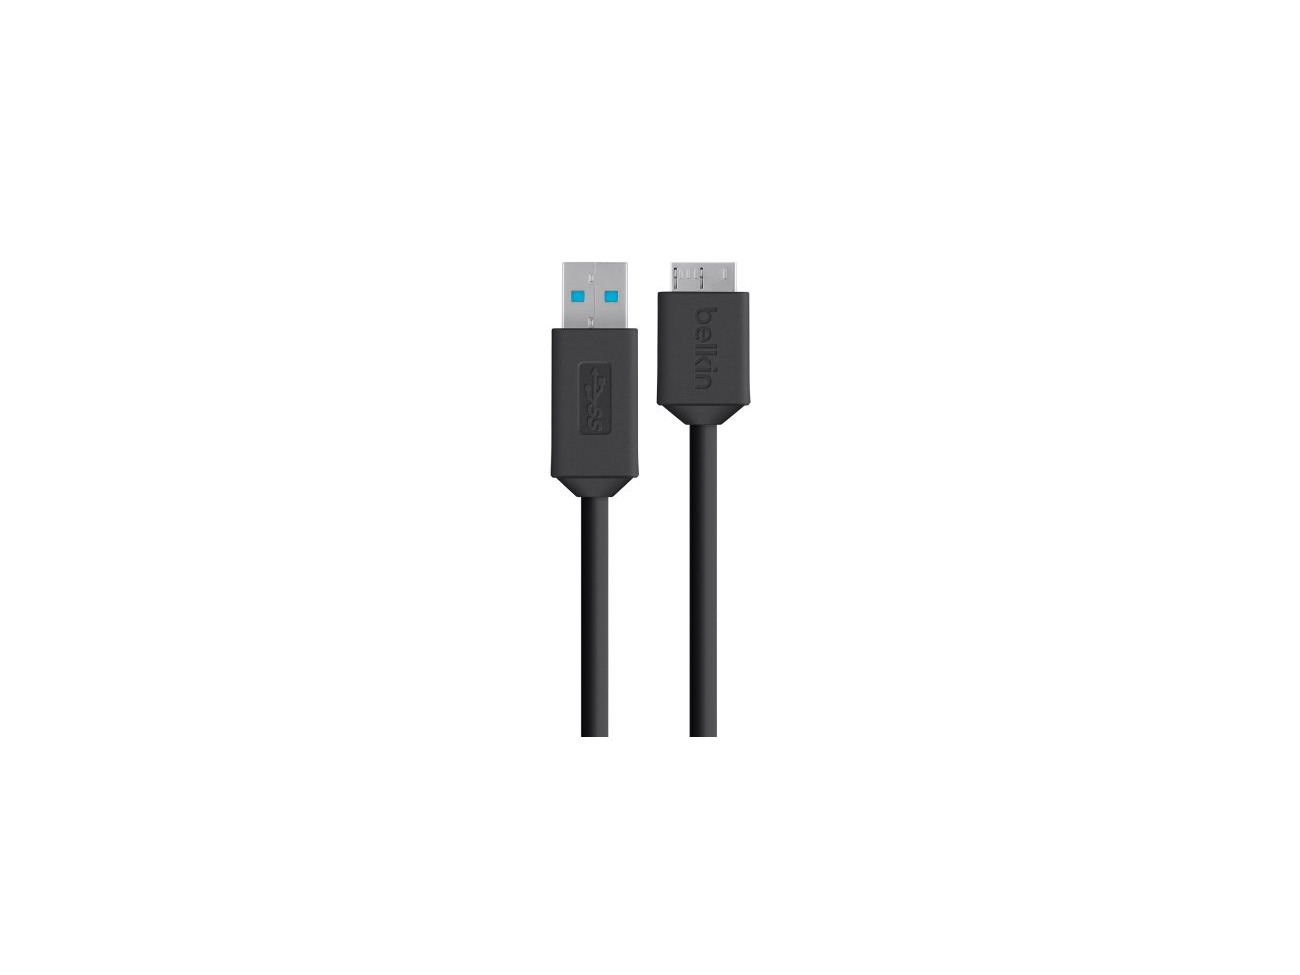 Universal Smartphones and Tablets Belkin Micro USB 3.0 Charge and Sync Cable for Samsung Galaxy S5 Note 3 2.1 Amp USB Car Charger Black